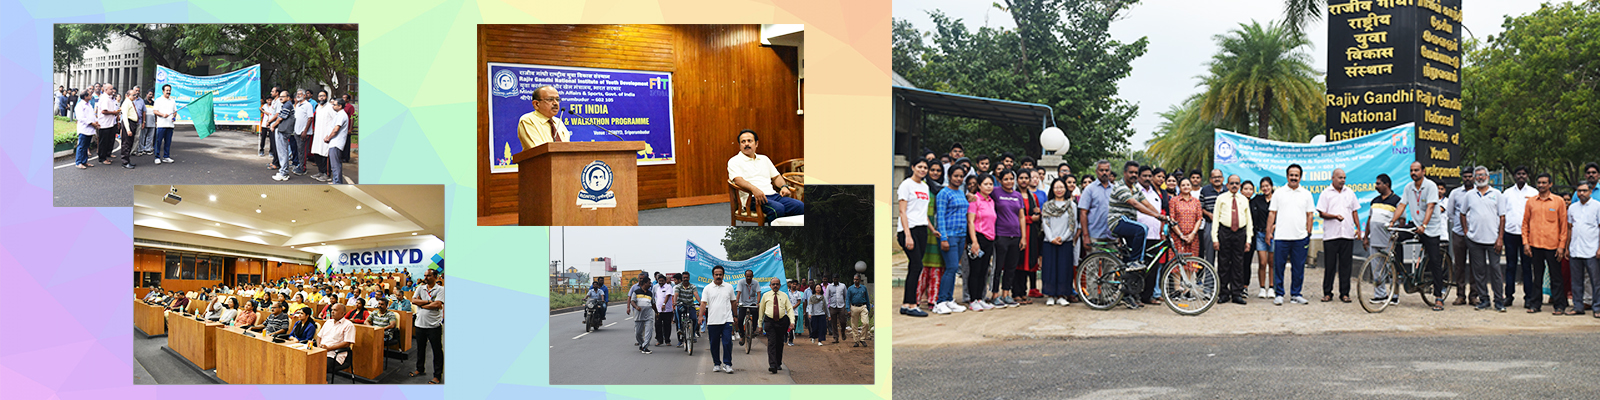 FIT India Cyclathon / Walkathon held on 18th January 2020